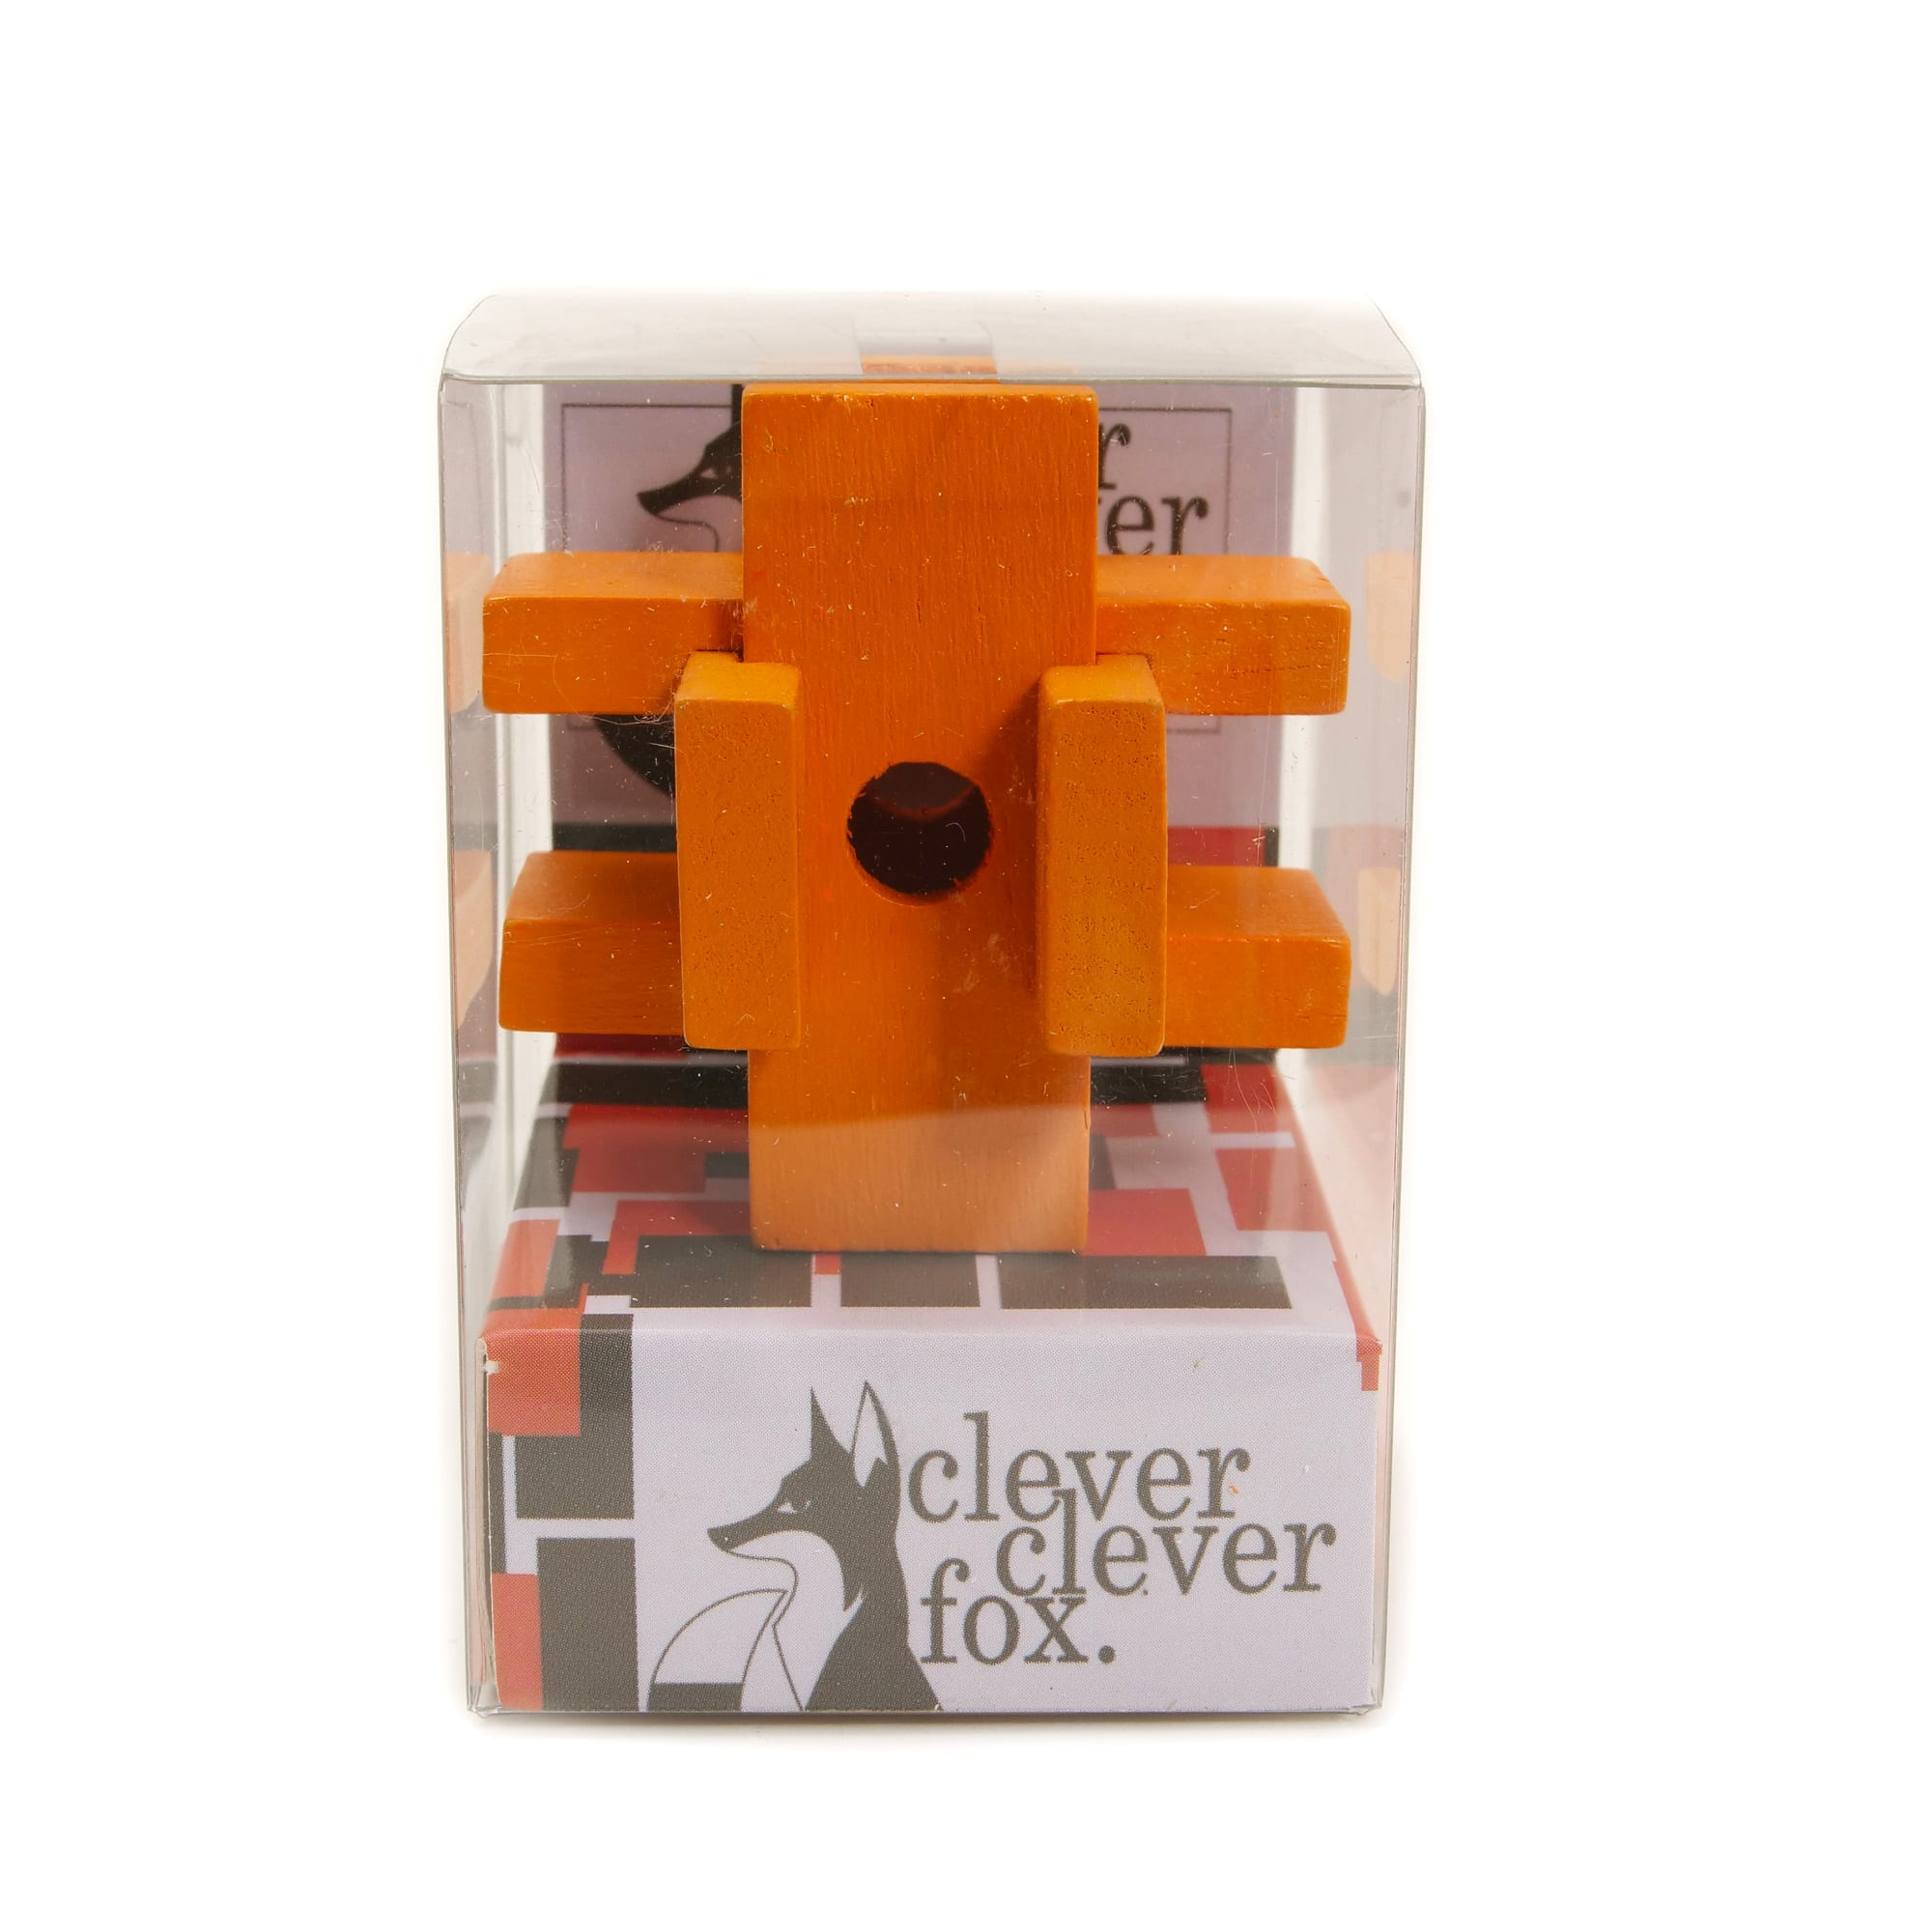 Clever Fox: Clever Clever Fox Wooden Puzzles - Orange